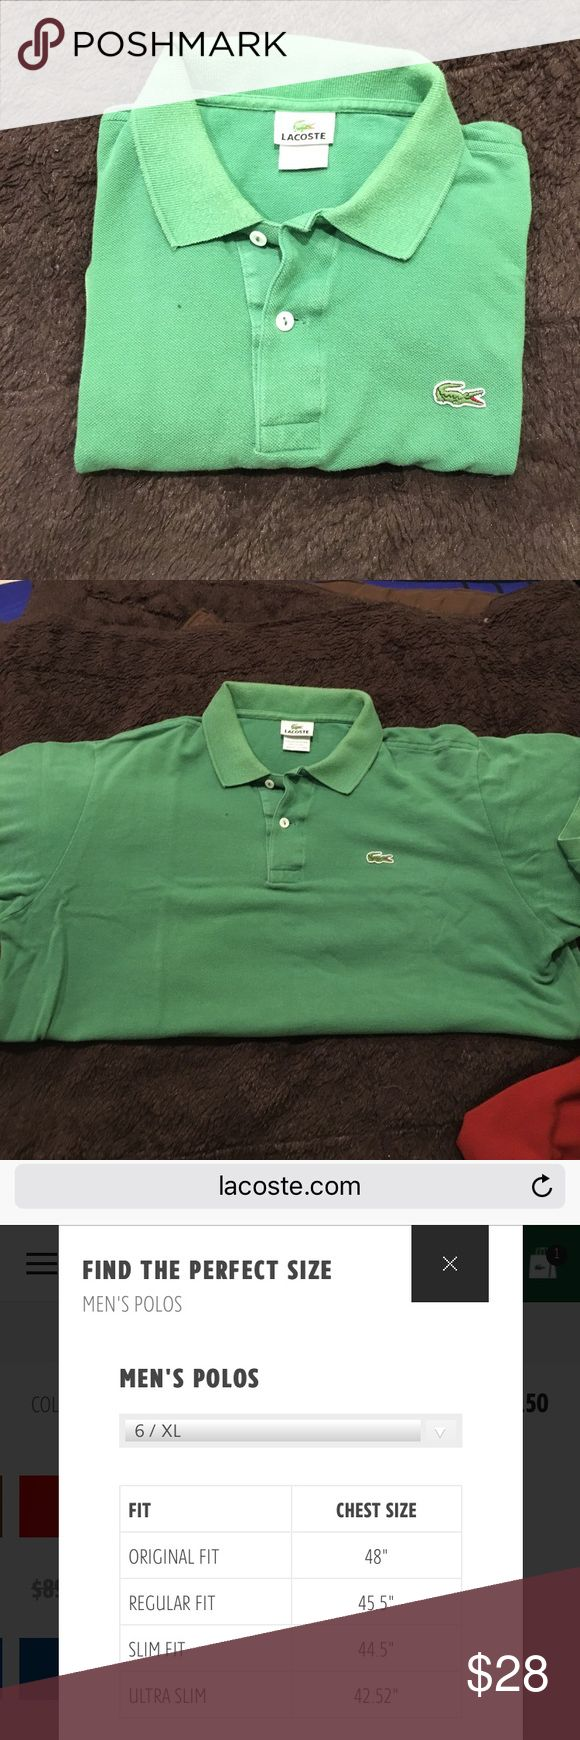 Lacoste Polo Very well worn but definitely still has life left. There's a bit of fading in the color but as I said before it's well worn but also well taken care of. The sizing is Lacoste sizing. Attached is a size guide from their website. Lacoste Shirts Polos